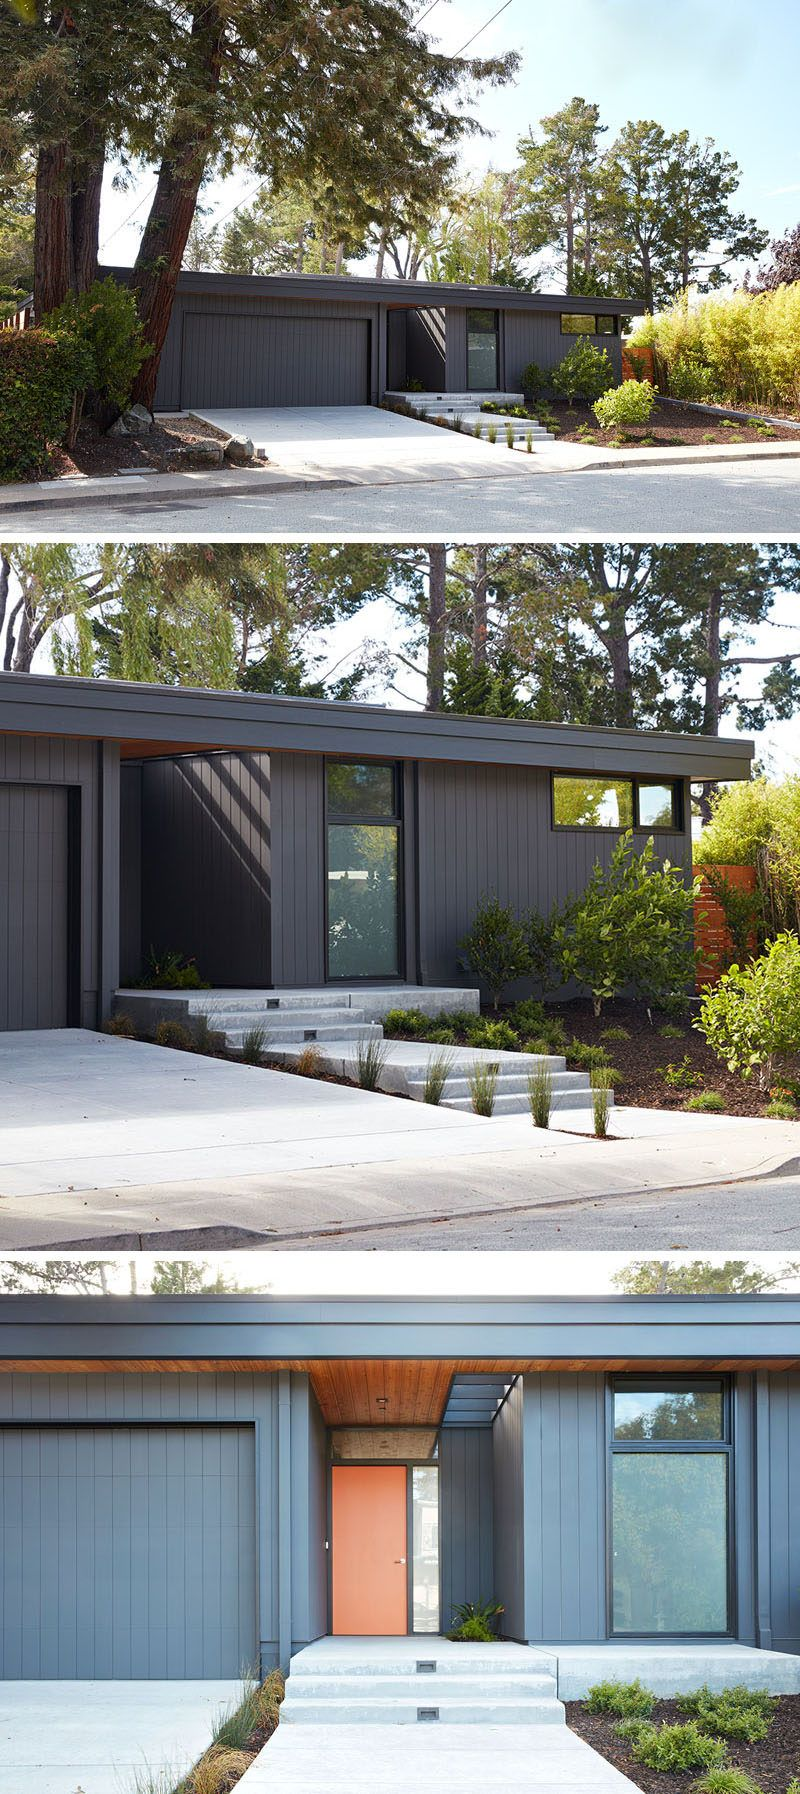 Roof slits by entrance - This new home in San Mateo Highlands, California, has been designed by Klopf Architecture as a replacement house for an original Eichler house that burnt down.